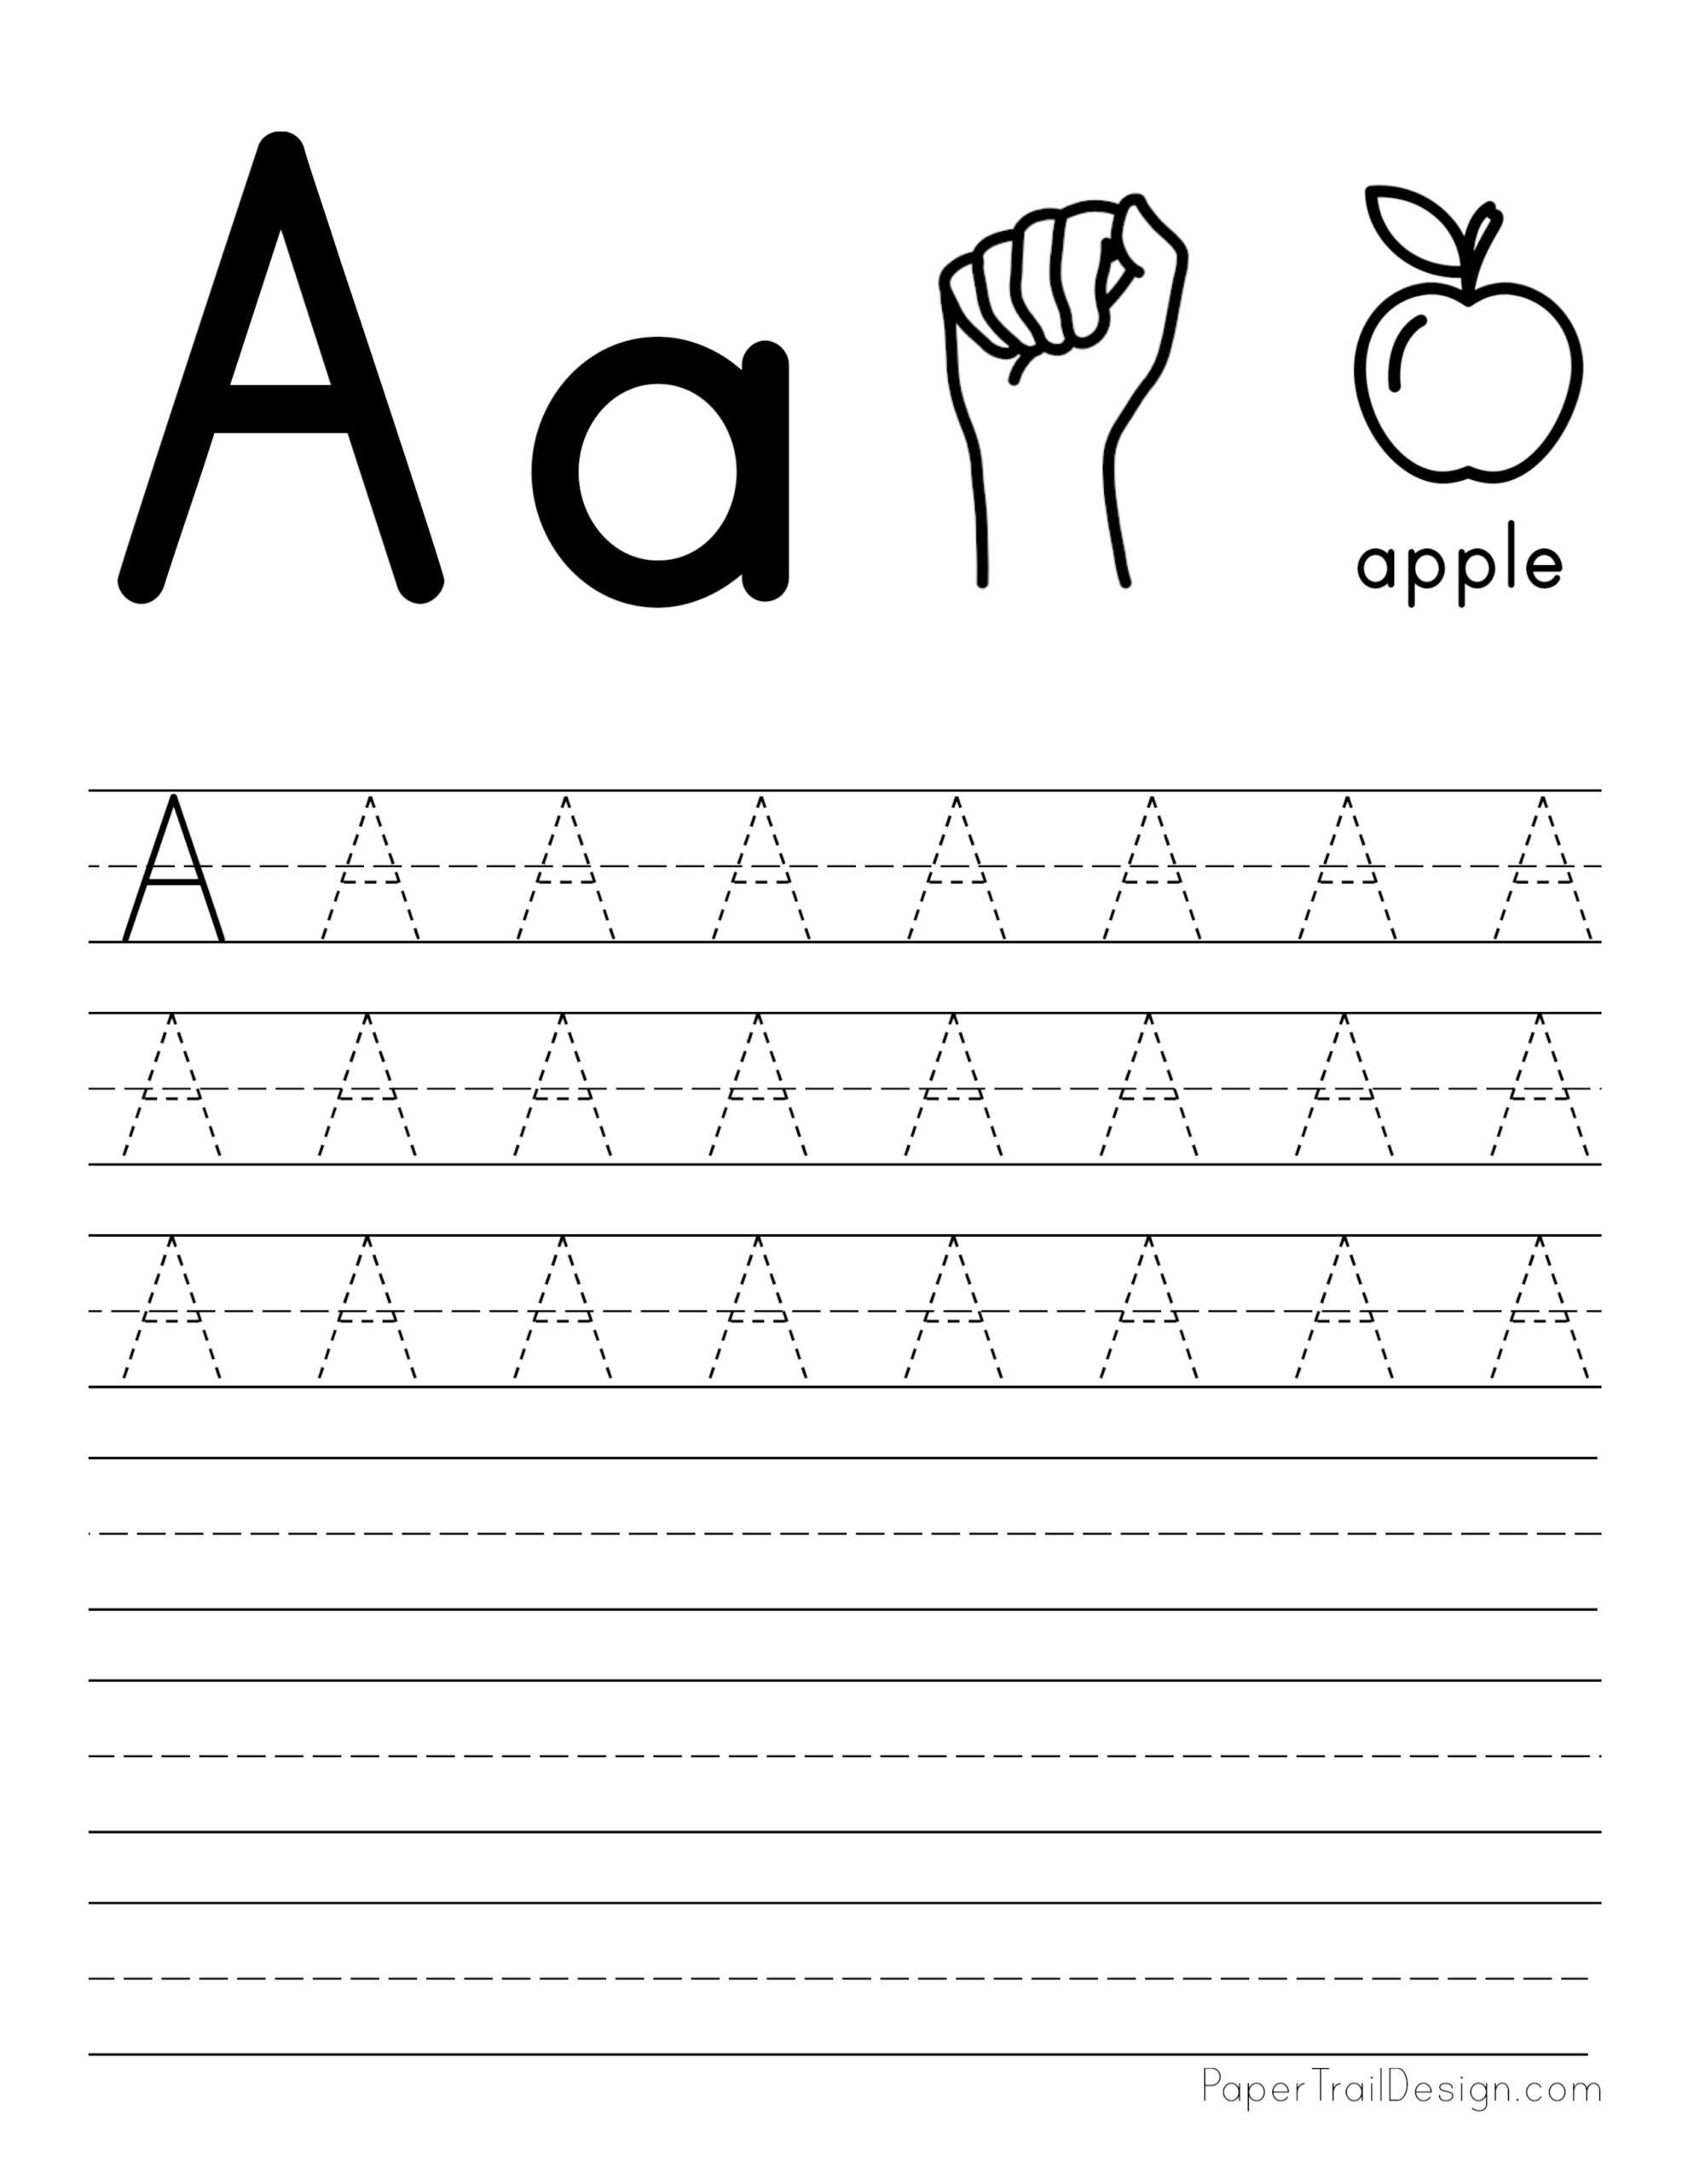 3 123 Tracing Worksheets Great Great Great Website So Many Printable Worksheets Alphabet Worksheets Preschool Free Preschool Worksheets Learning Worksheets [ 1931 x 1324 Pixel ]